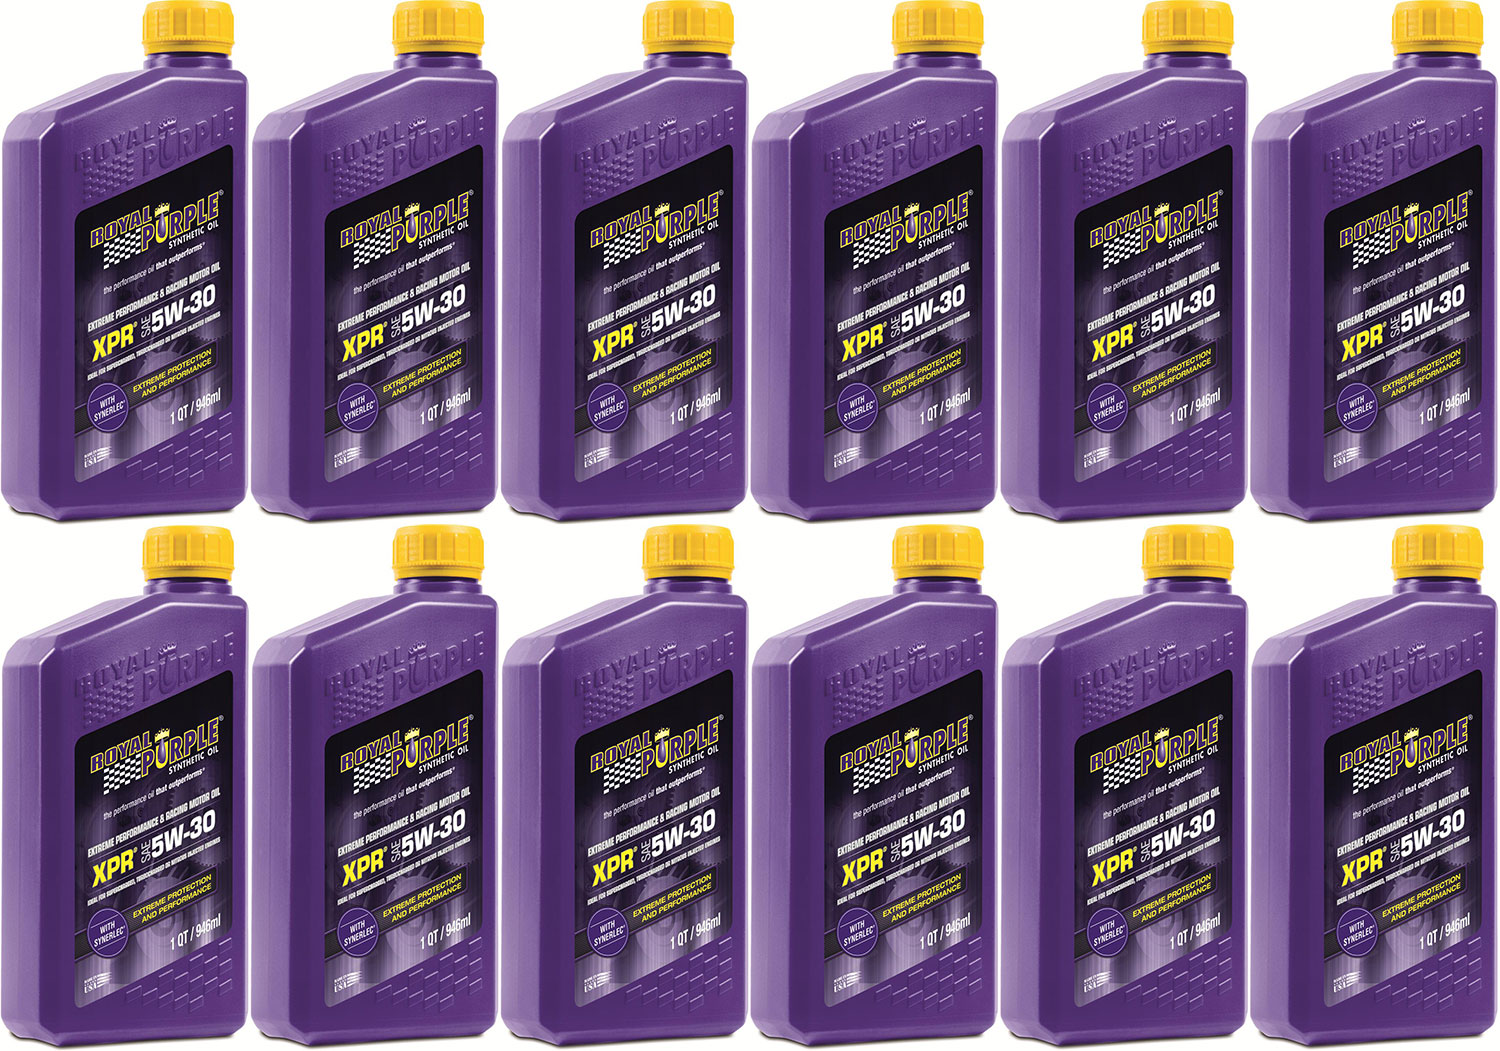 Royal Purple XPR Extreme Performance Racing Oil: 5w-30 12 quarts case